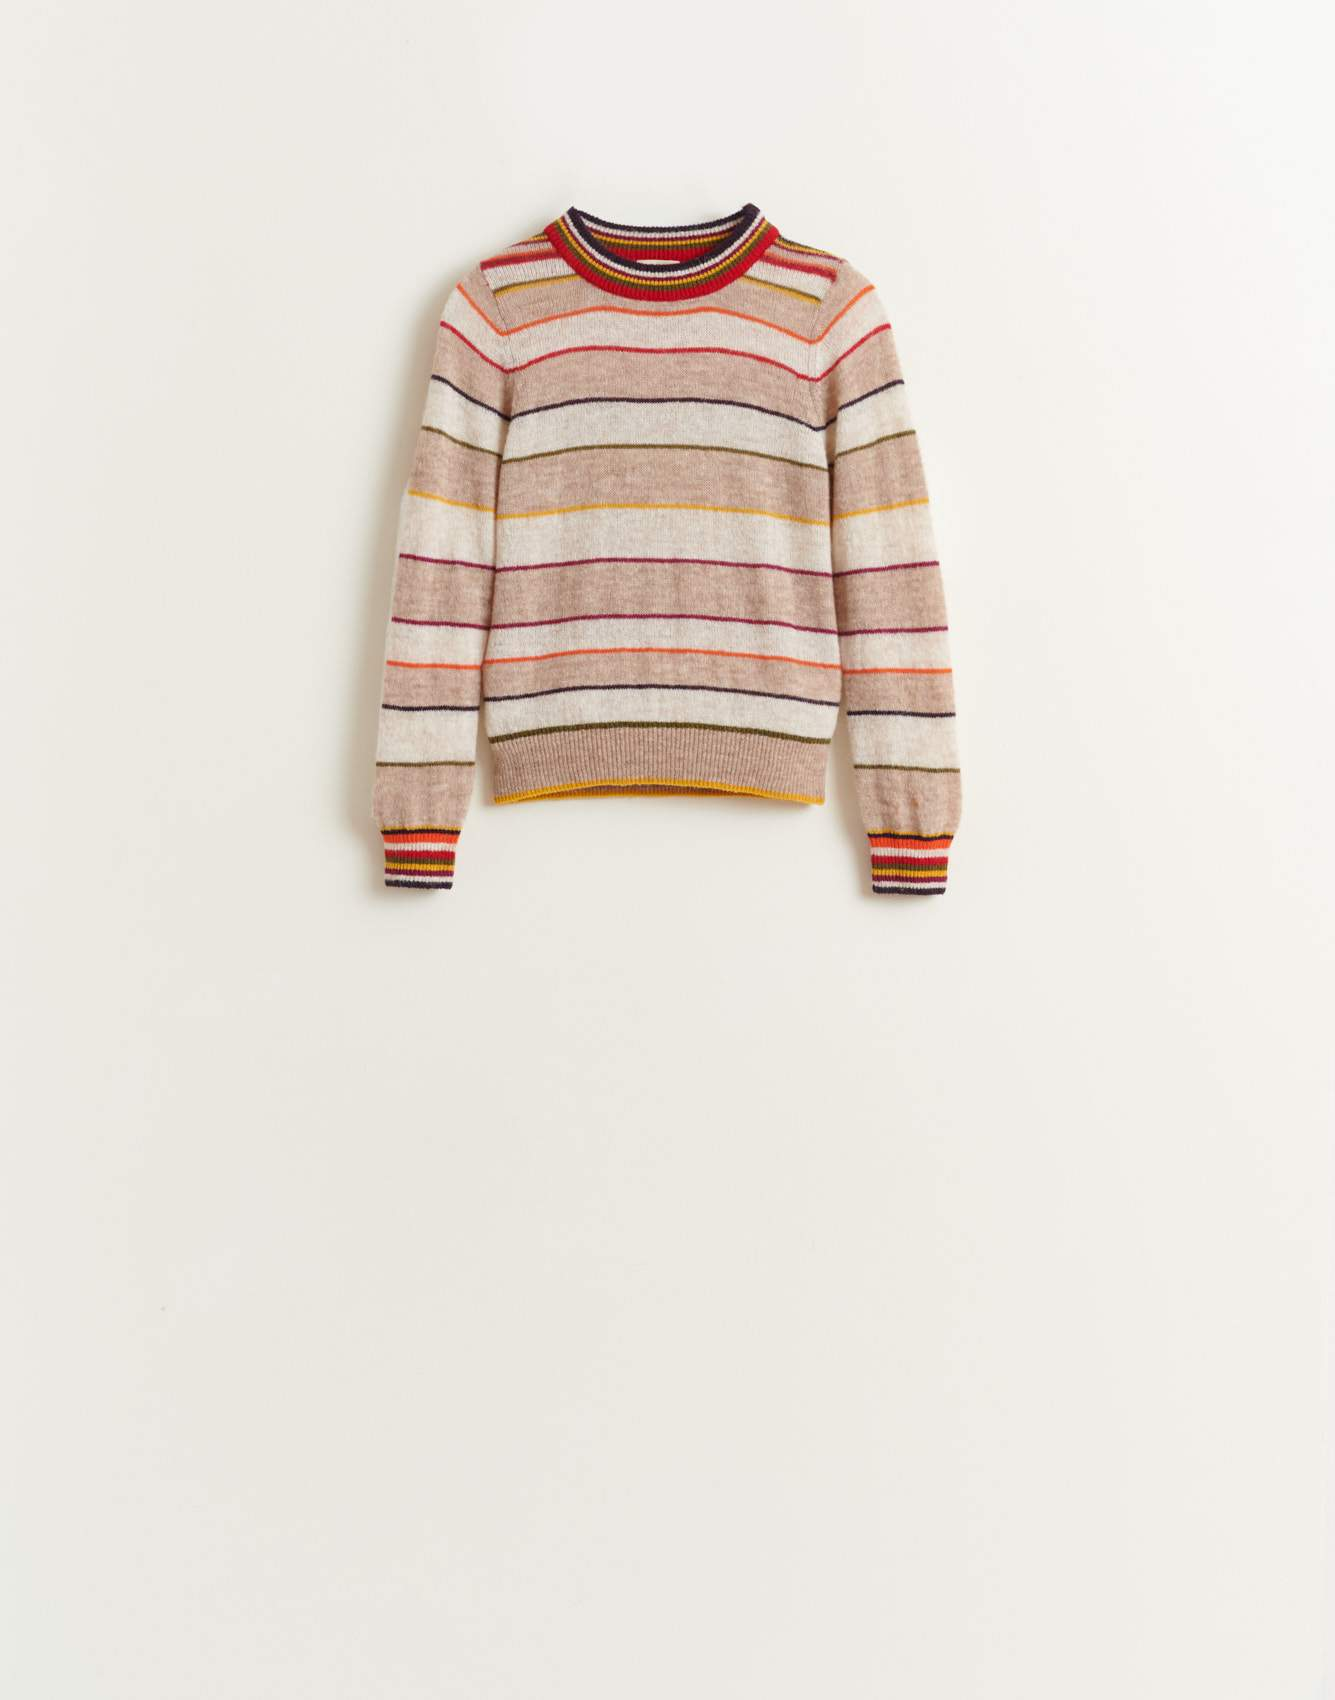 BLR_GIRLS_KNIT_DASMY_K1005S_STRIPE_A_5000x5000.jpg